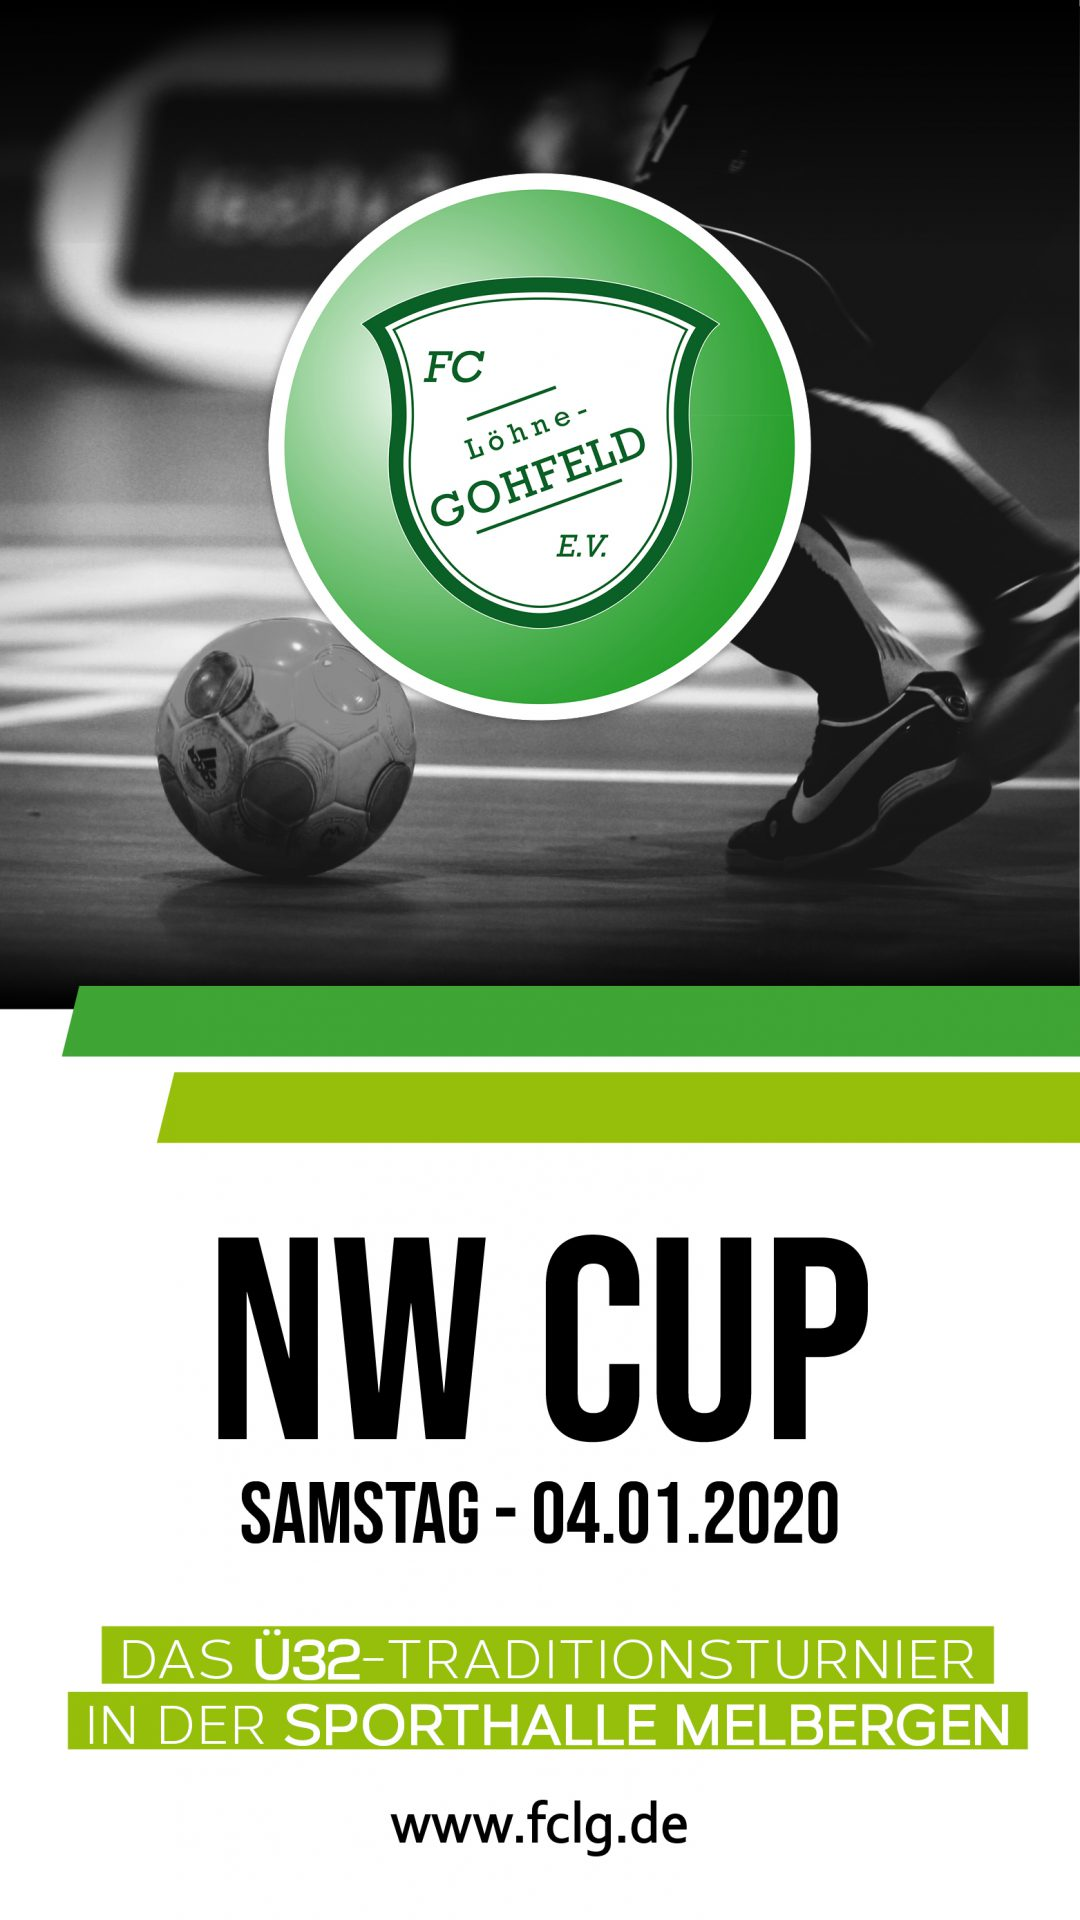 NW-Cup 2020